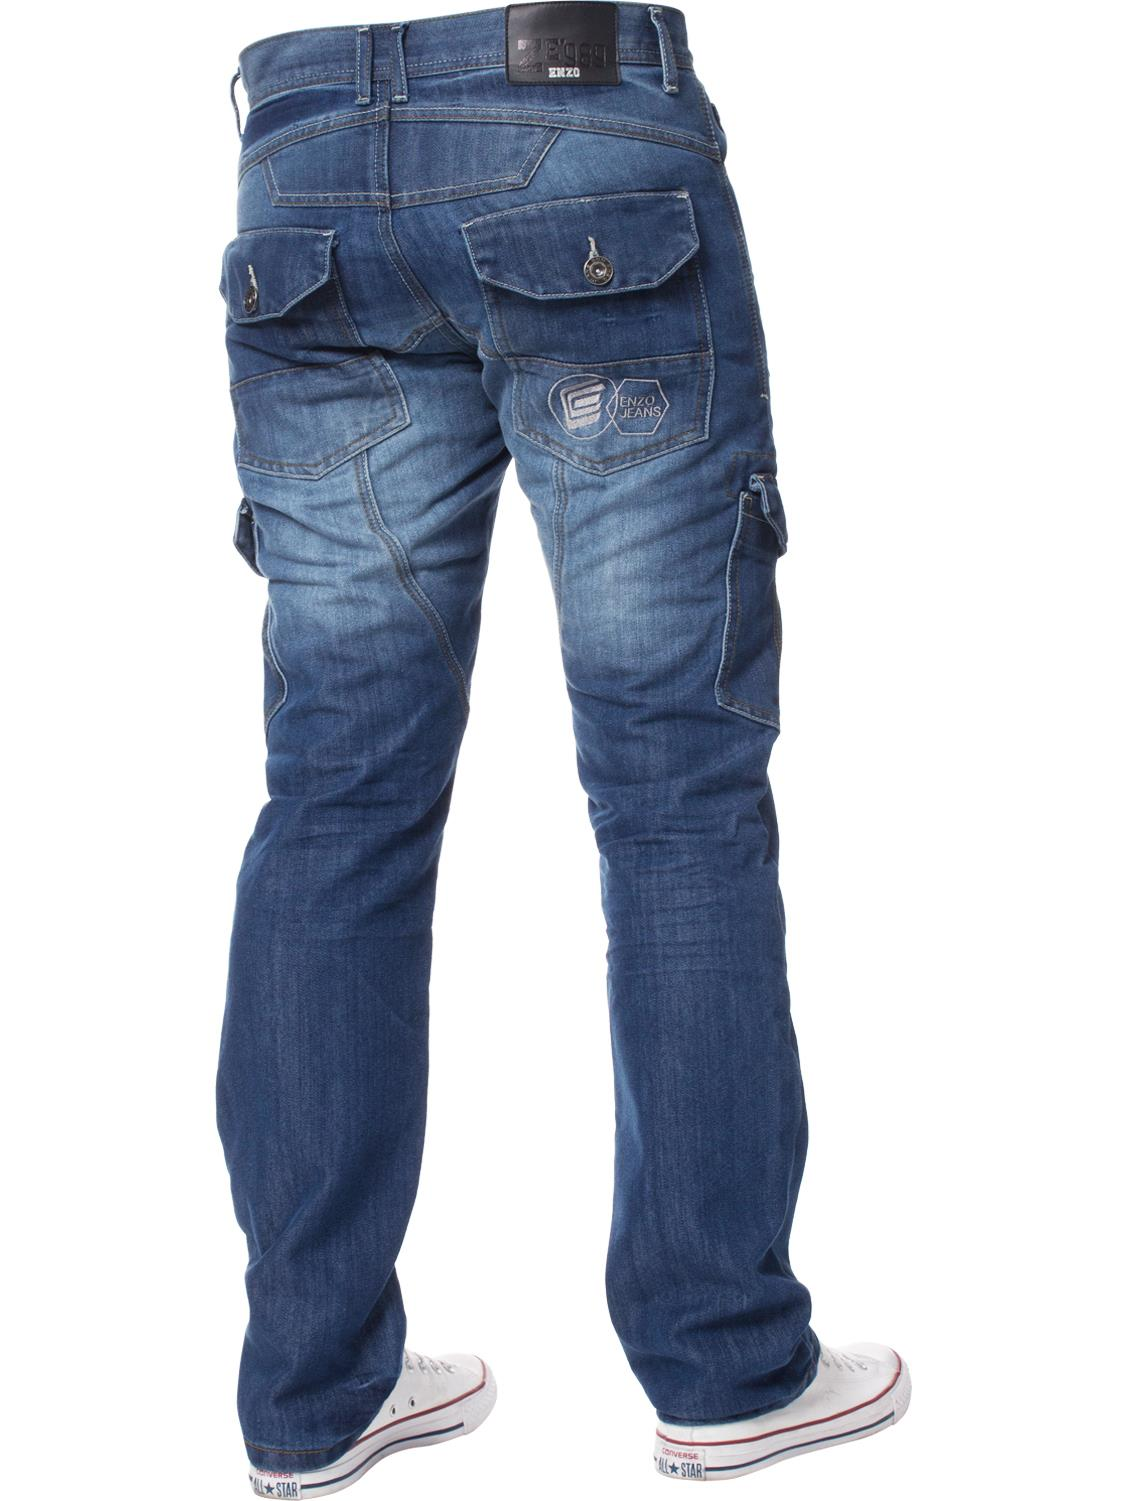 Enzo-Mens-Jeans-Big-Tall-Leg-King-Size-Denim-Pants-Chino-Trousers-Waist-44-034-60-034 miniature 83